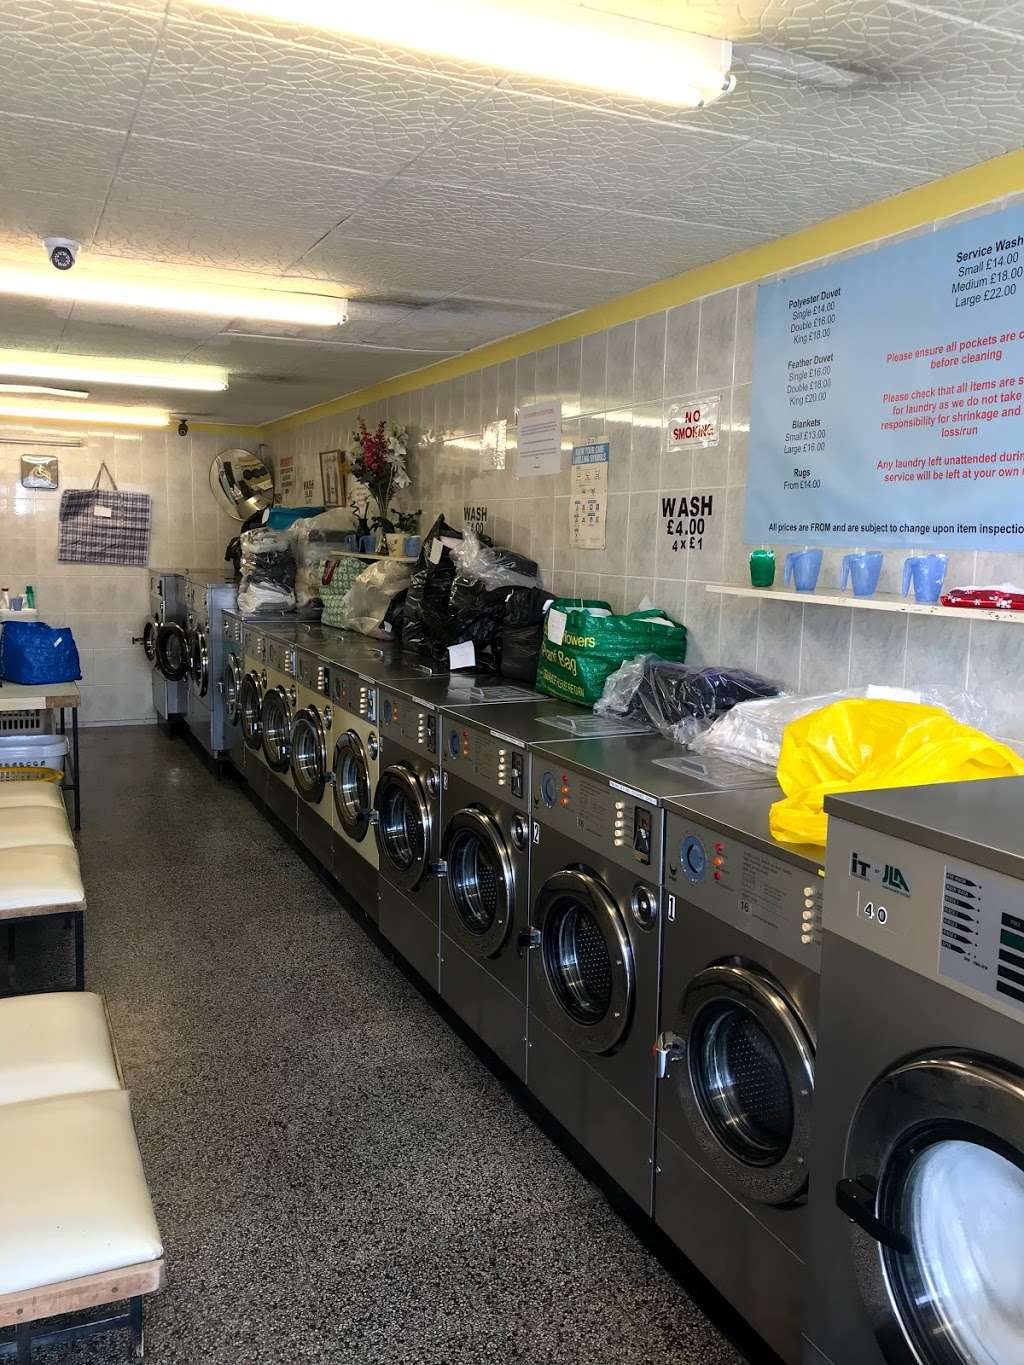 Bubble Brothers Laundrette & Dry Cleaners - laundry  | Photo 4 of 10 | Address: 15 High St, Chipping Ongar, Ongar CM5 9DS, UK | Phone: 01277 364090